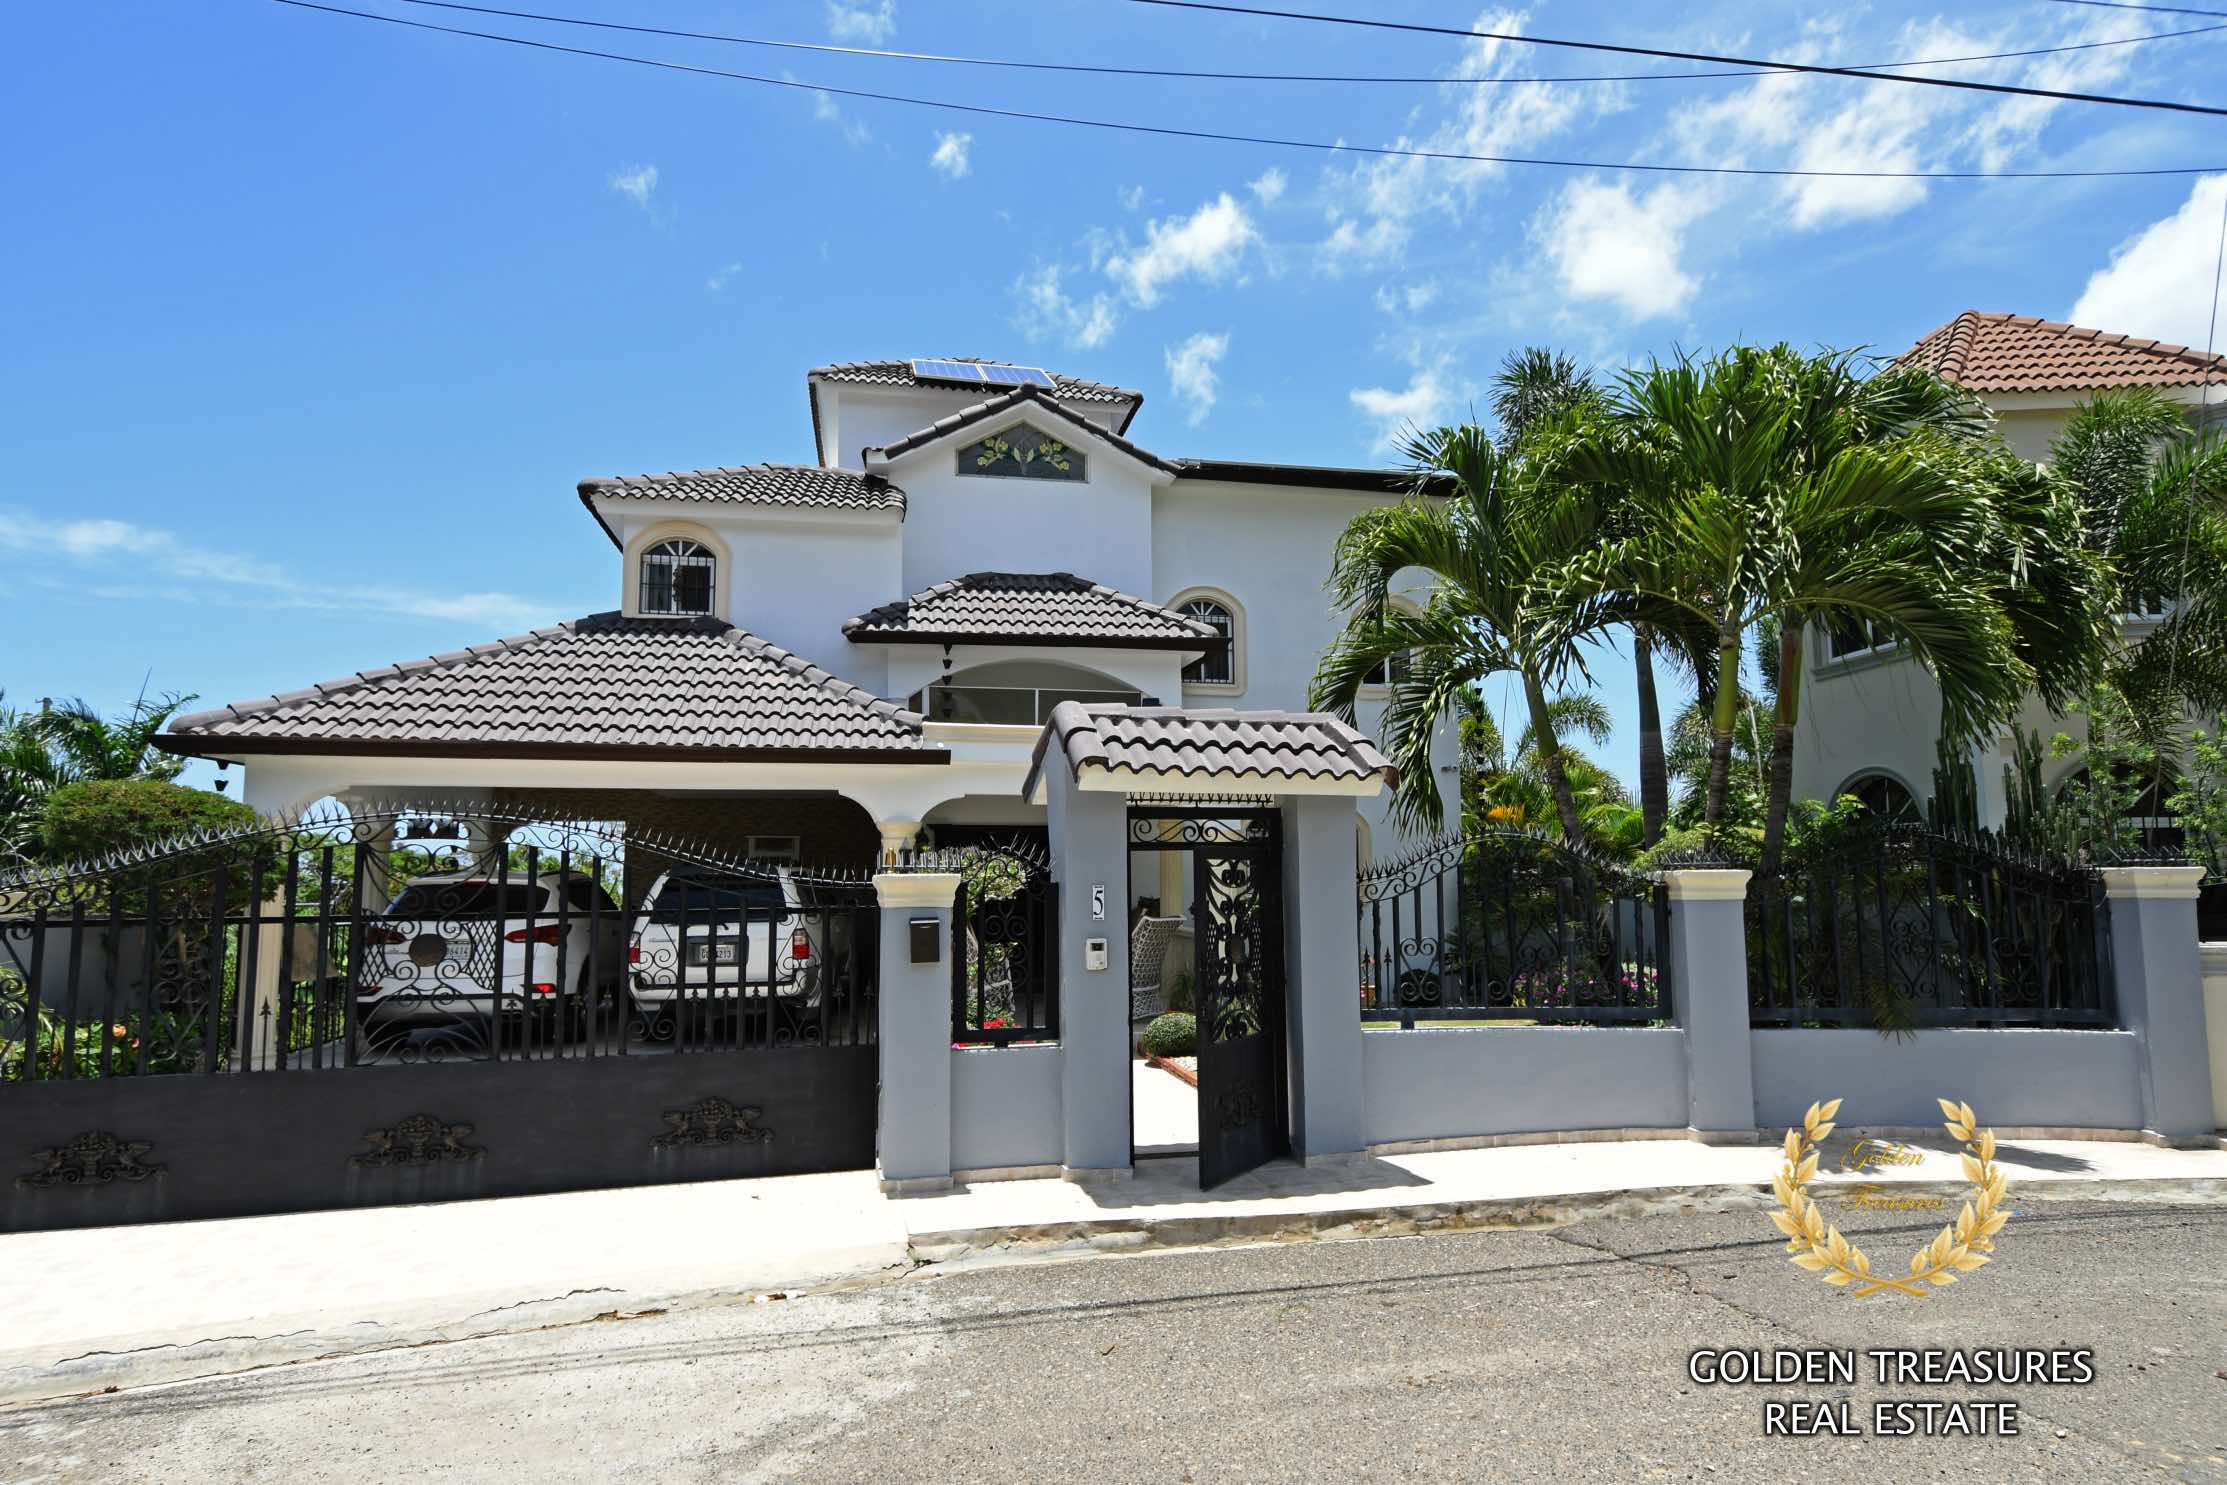 4 Bedroom 3 Level House Sale Puerto Plata DR